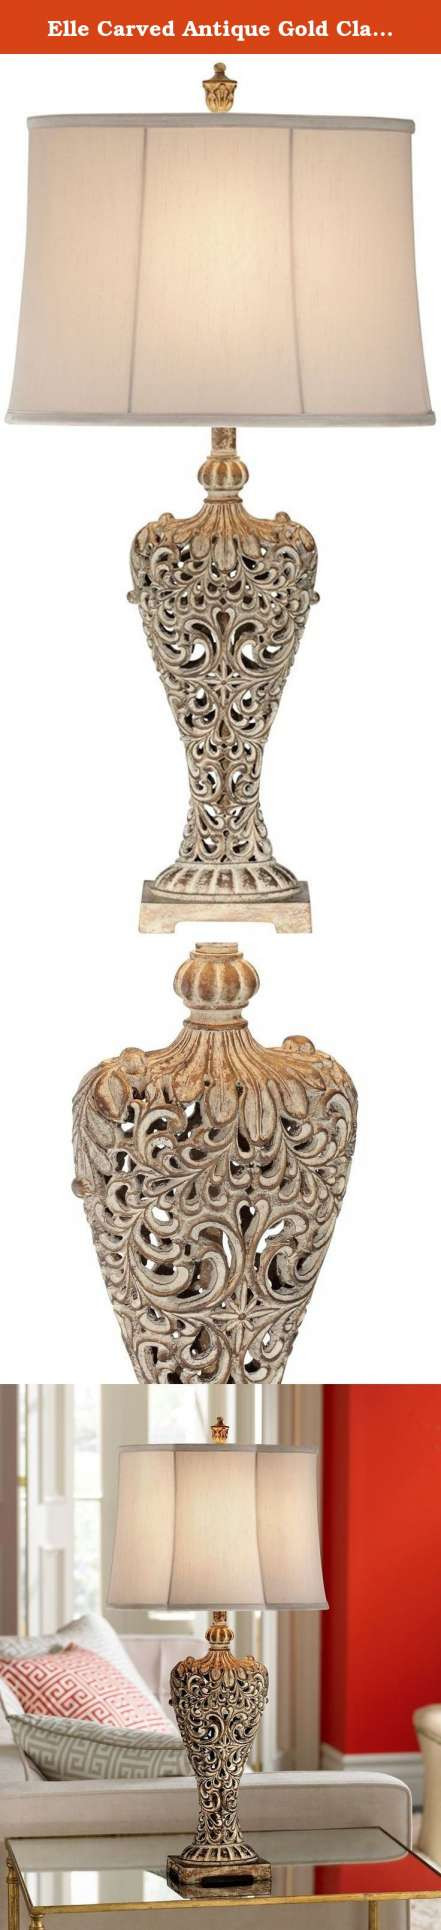 18 Perfect Pottery Barn Clear Glass Vases 2021 free download pottery barn clear glass vases of scroll table lamp for 19 luxury pottery barn dining table www for scroll table lamp for 19 luxury pottery barn dining table